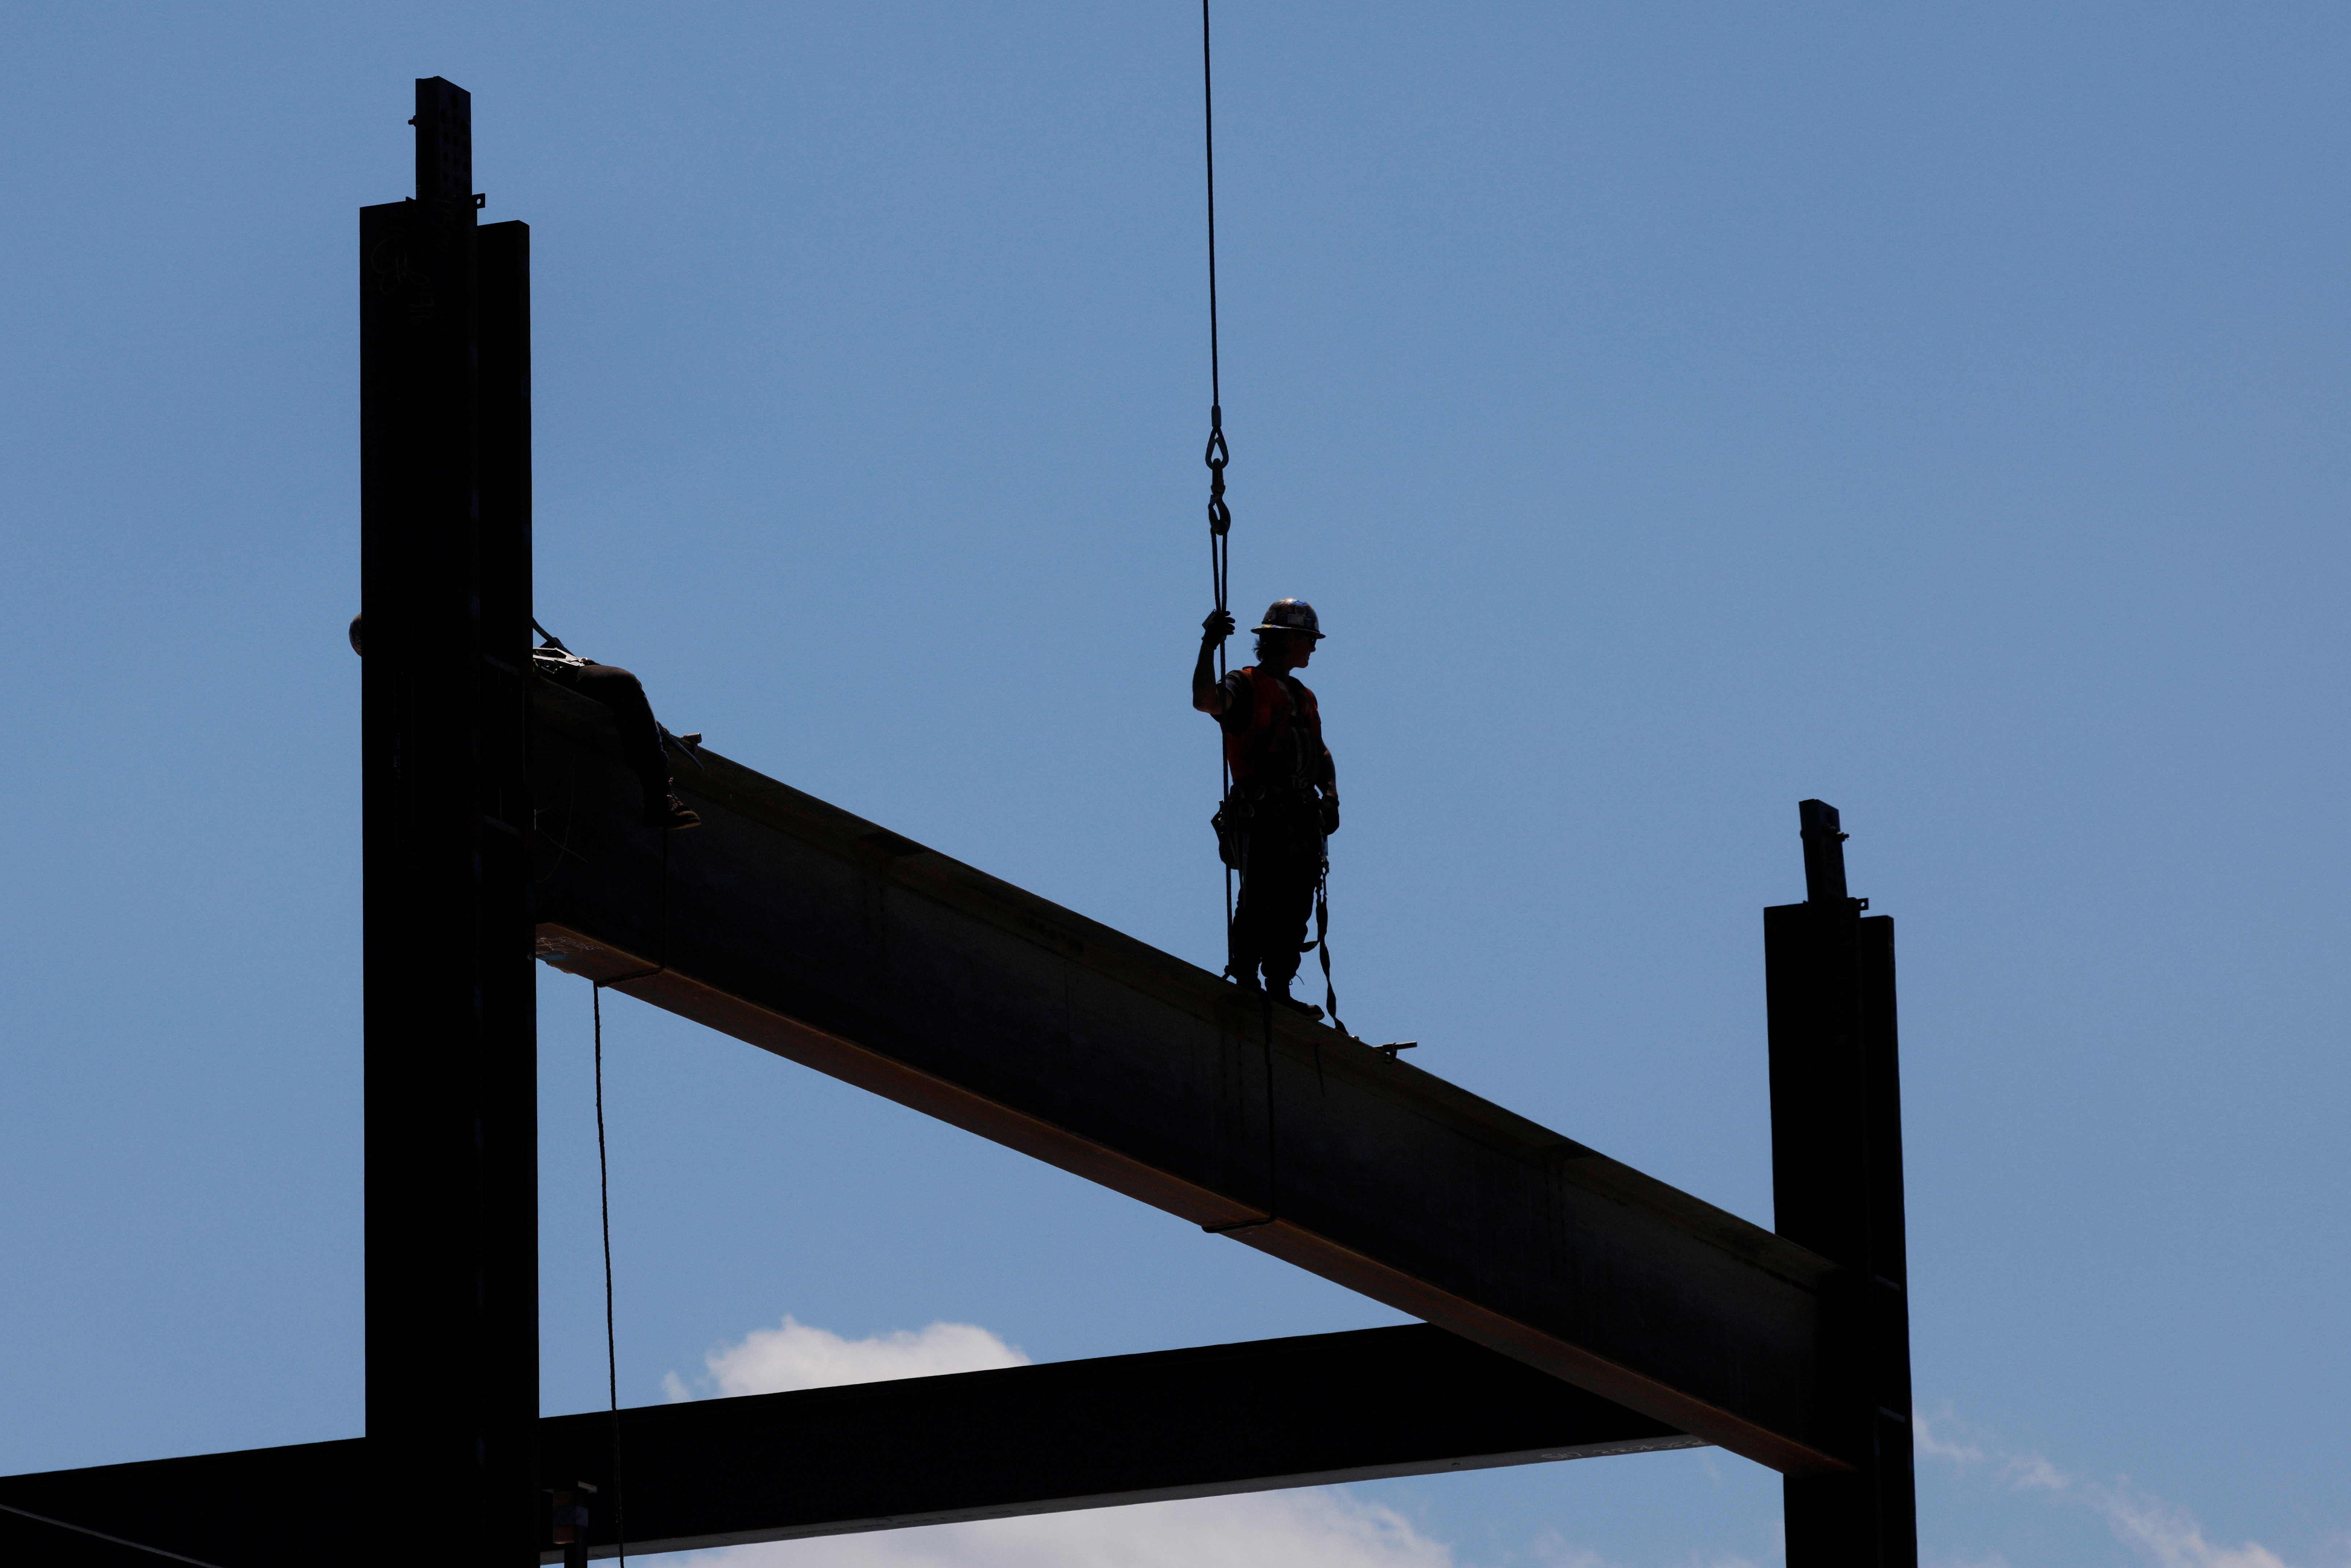 A member of the Ironworkers Local 7 union installs steel beams on high-rise building under construction during a summer heat wave in Boston, Massachusetts, U.S., June 30, 2021.   REUTERS/Brian Snyder